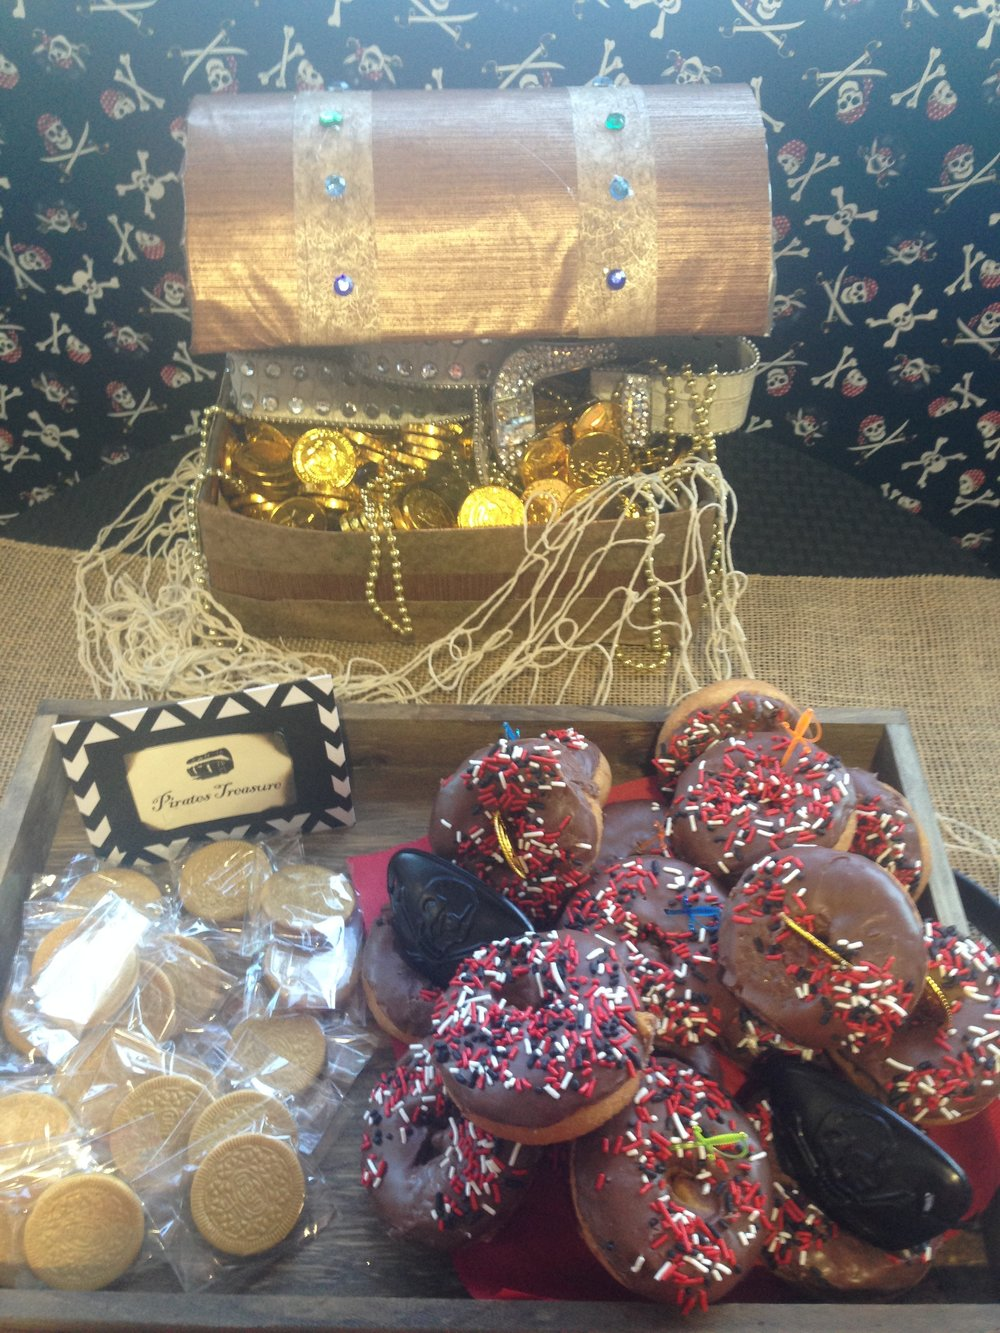 Personal Events, Pacific Northwest, Sandpoint Idaho, Pirate Party